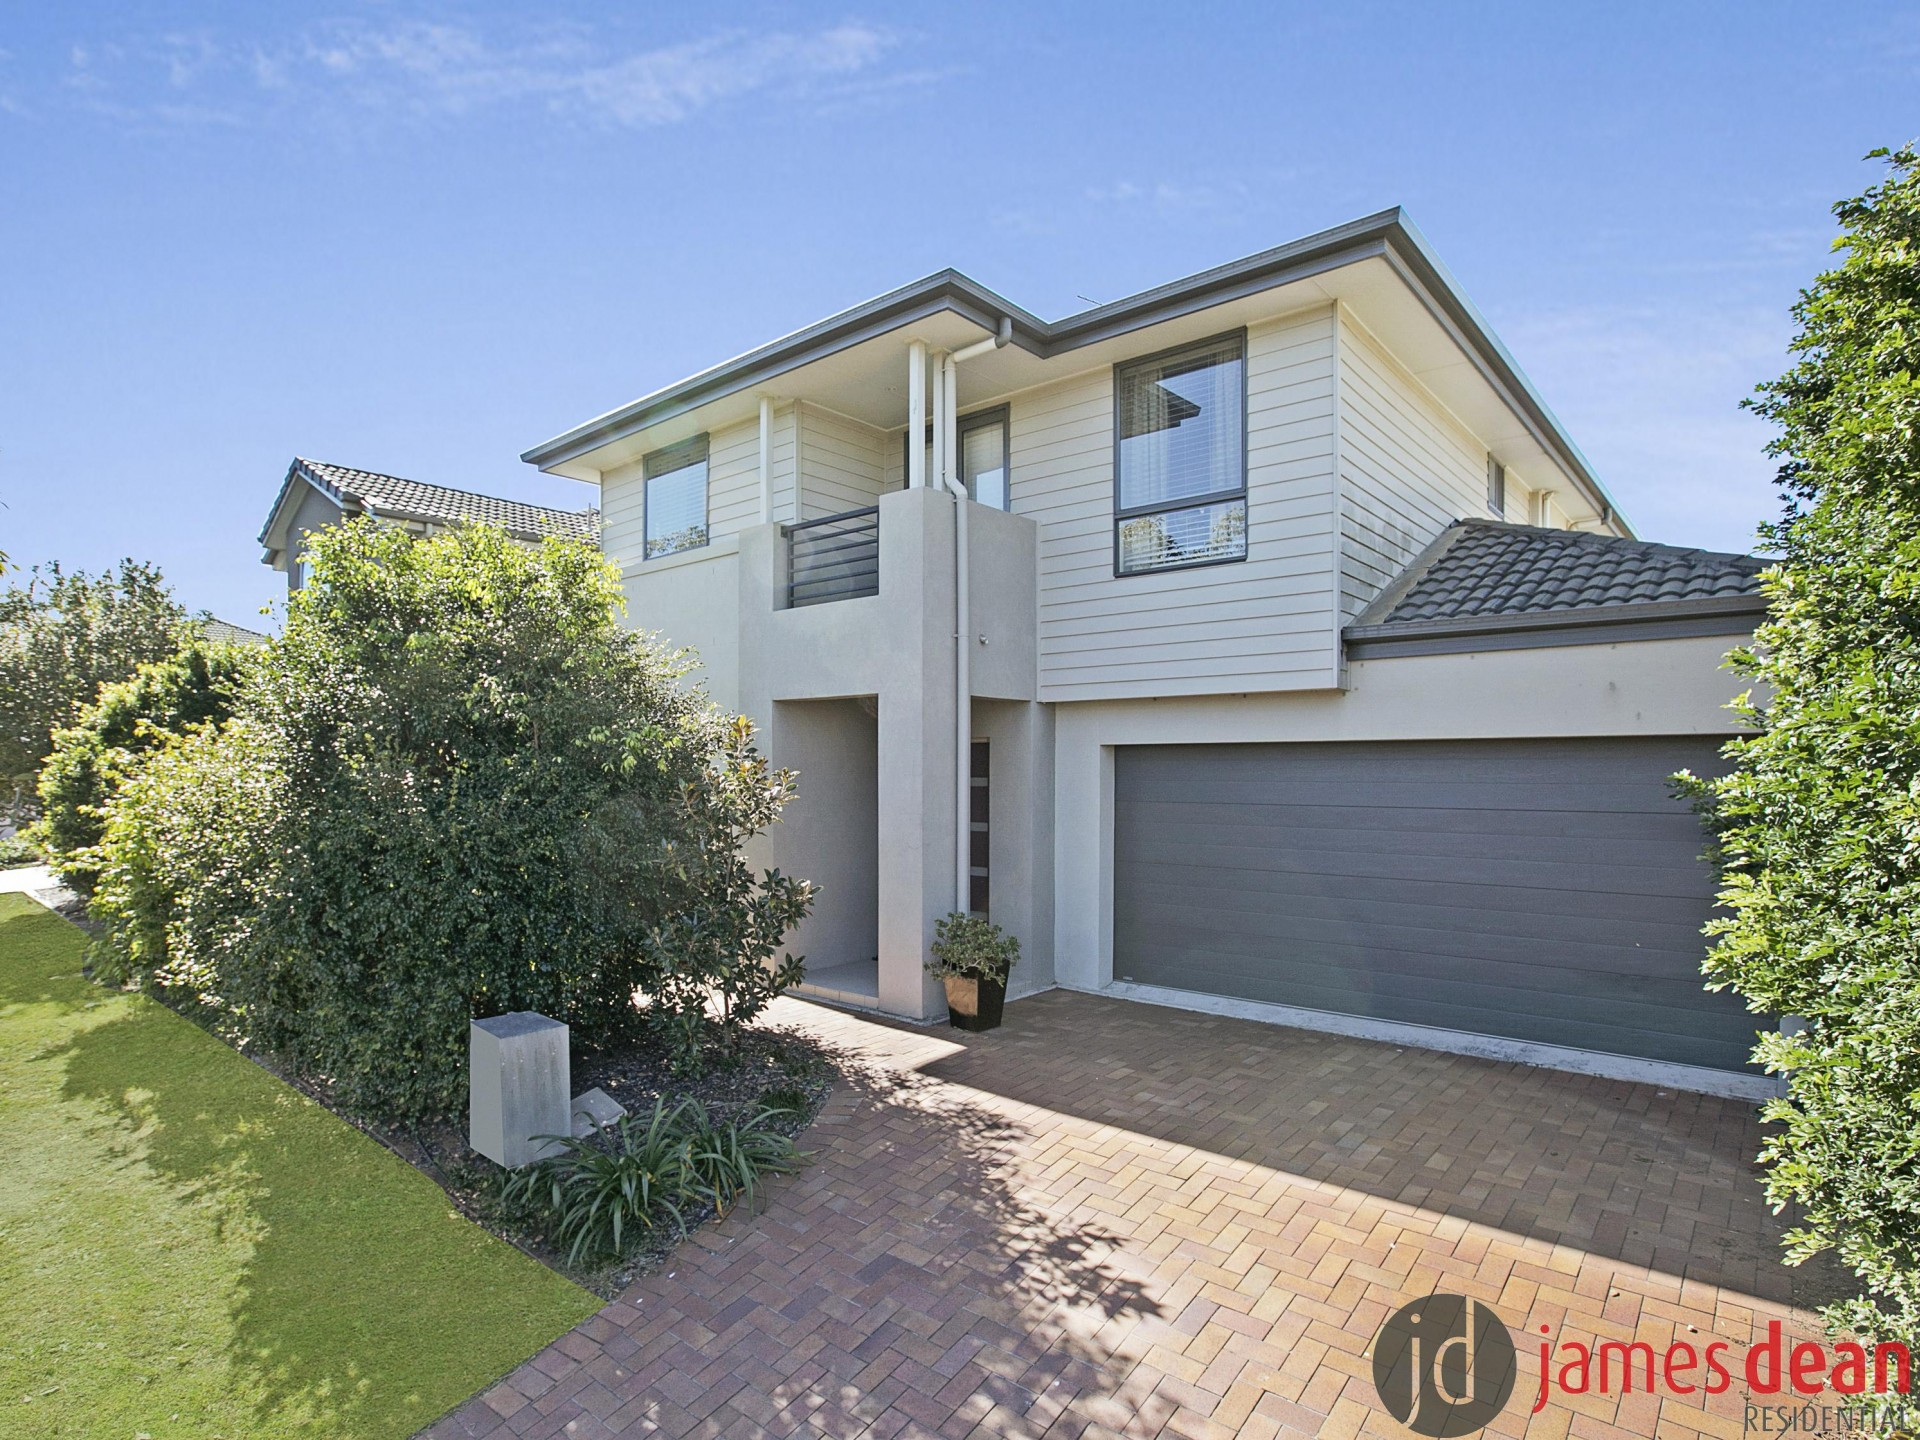 Large Australand Family Home With Study/Office & Ducted Air Conditioning Upstairs